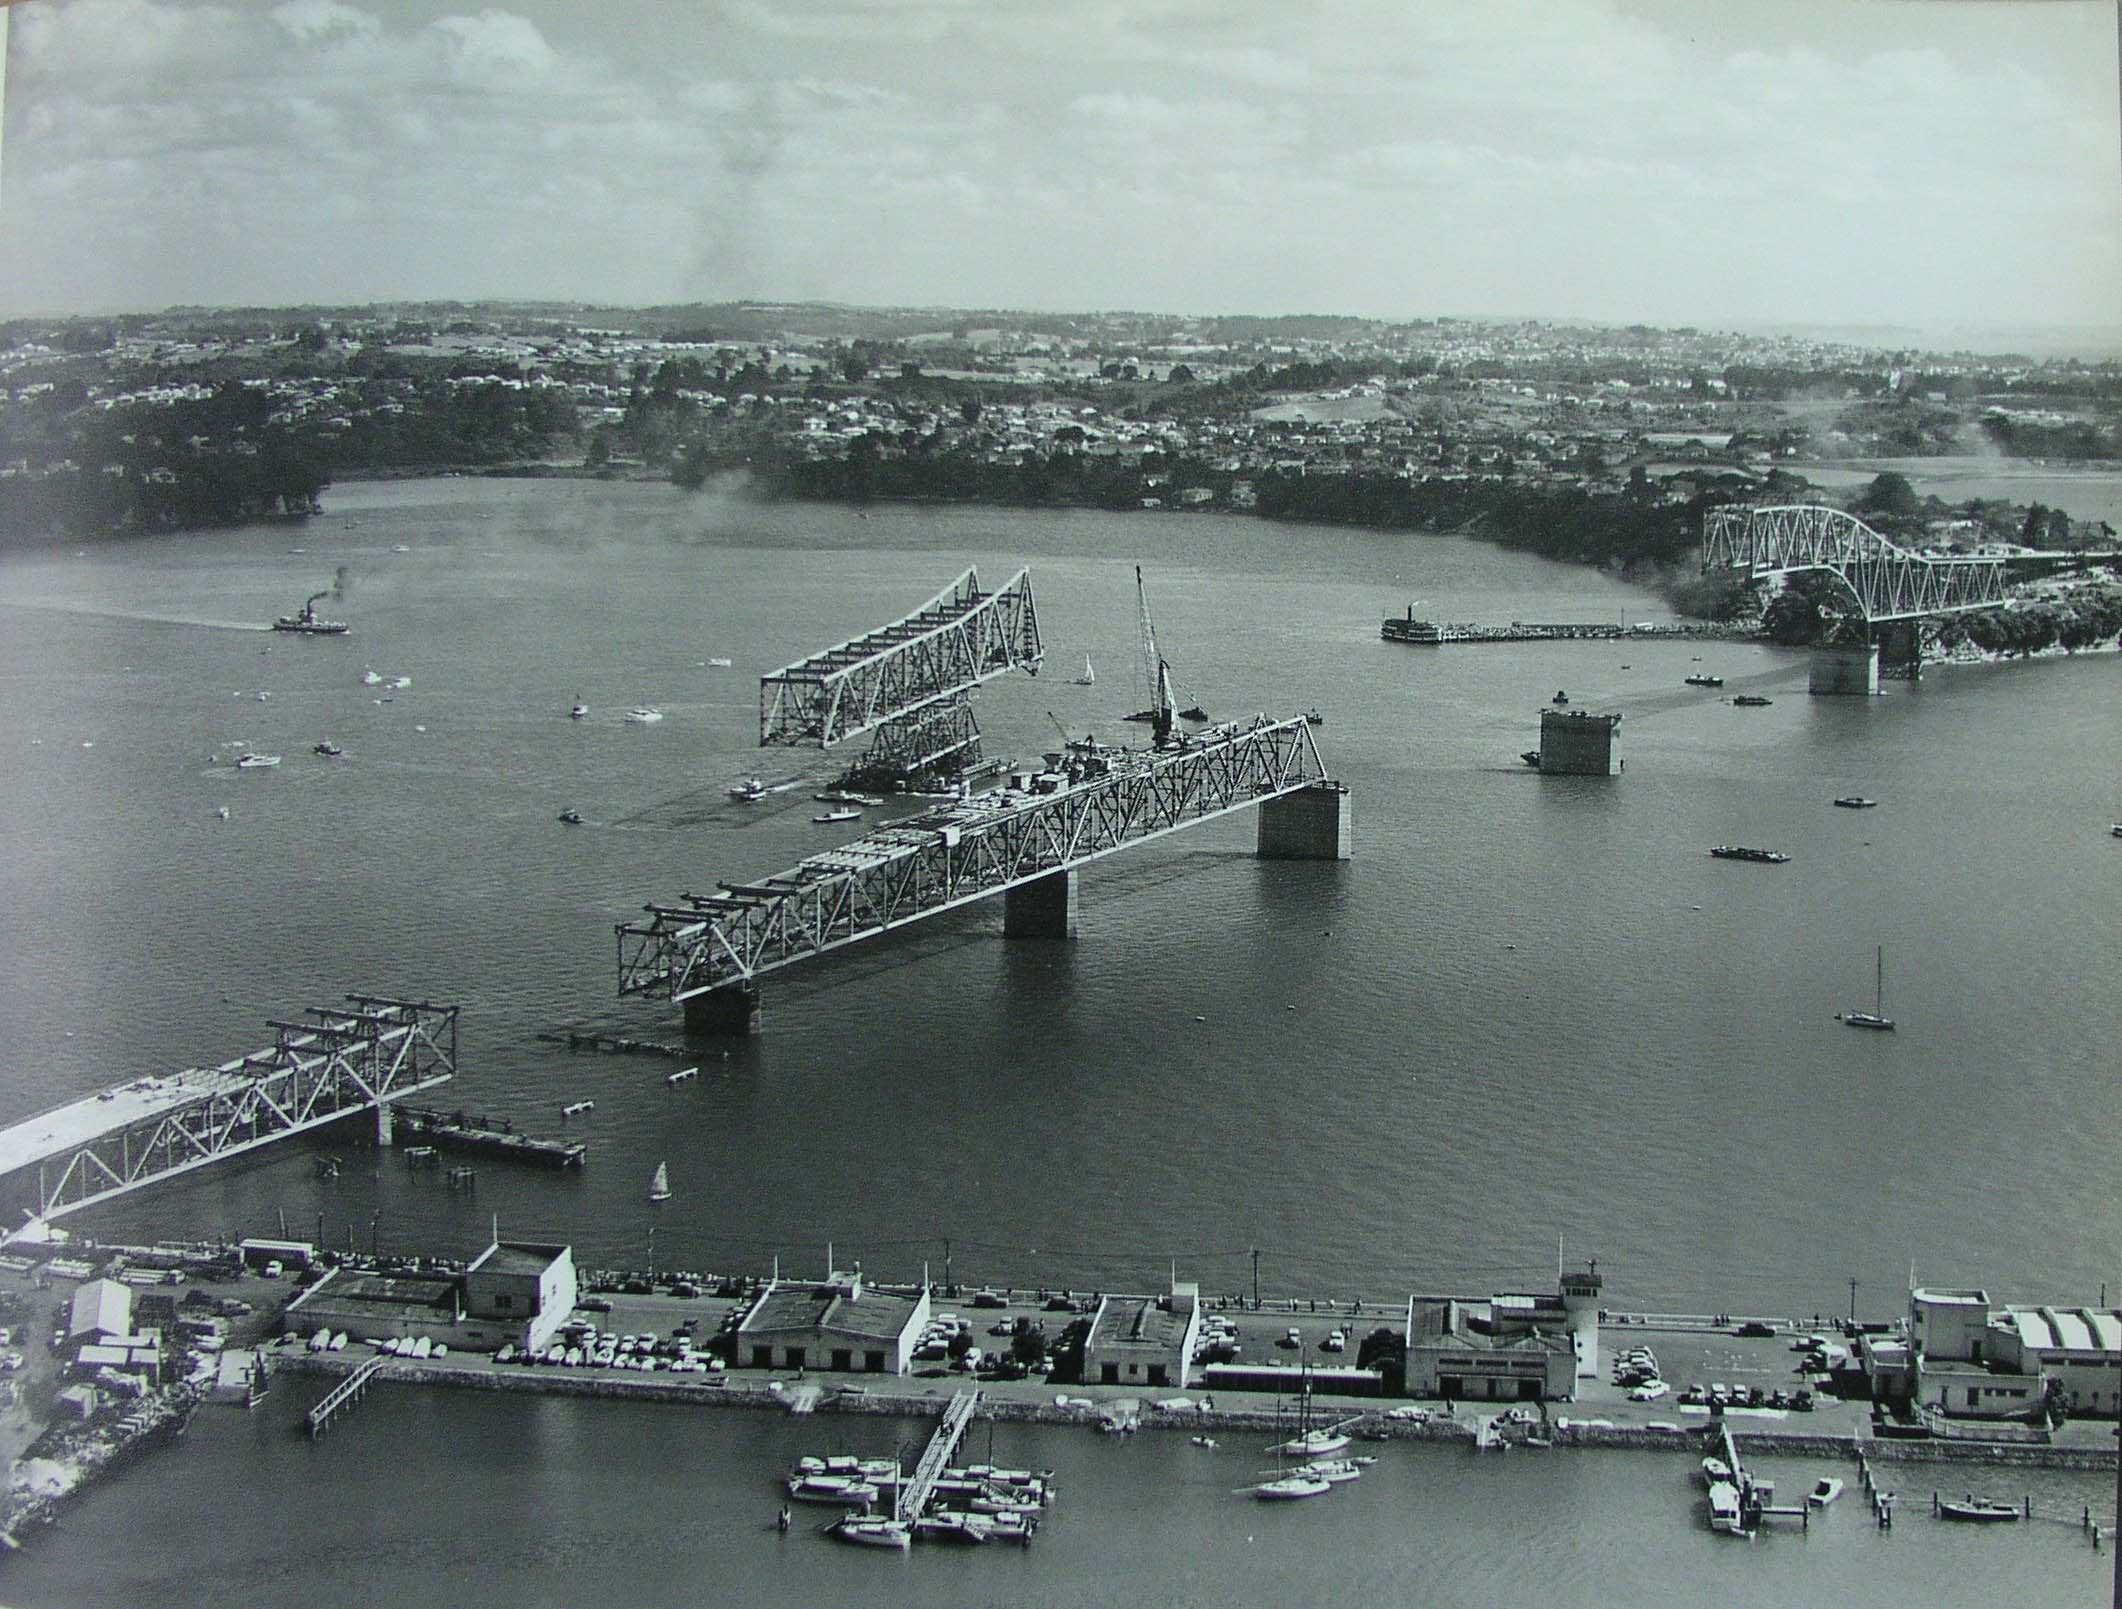 Aerial photo showing construction of Auckland Harbour Bridge on 29 November 1958